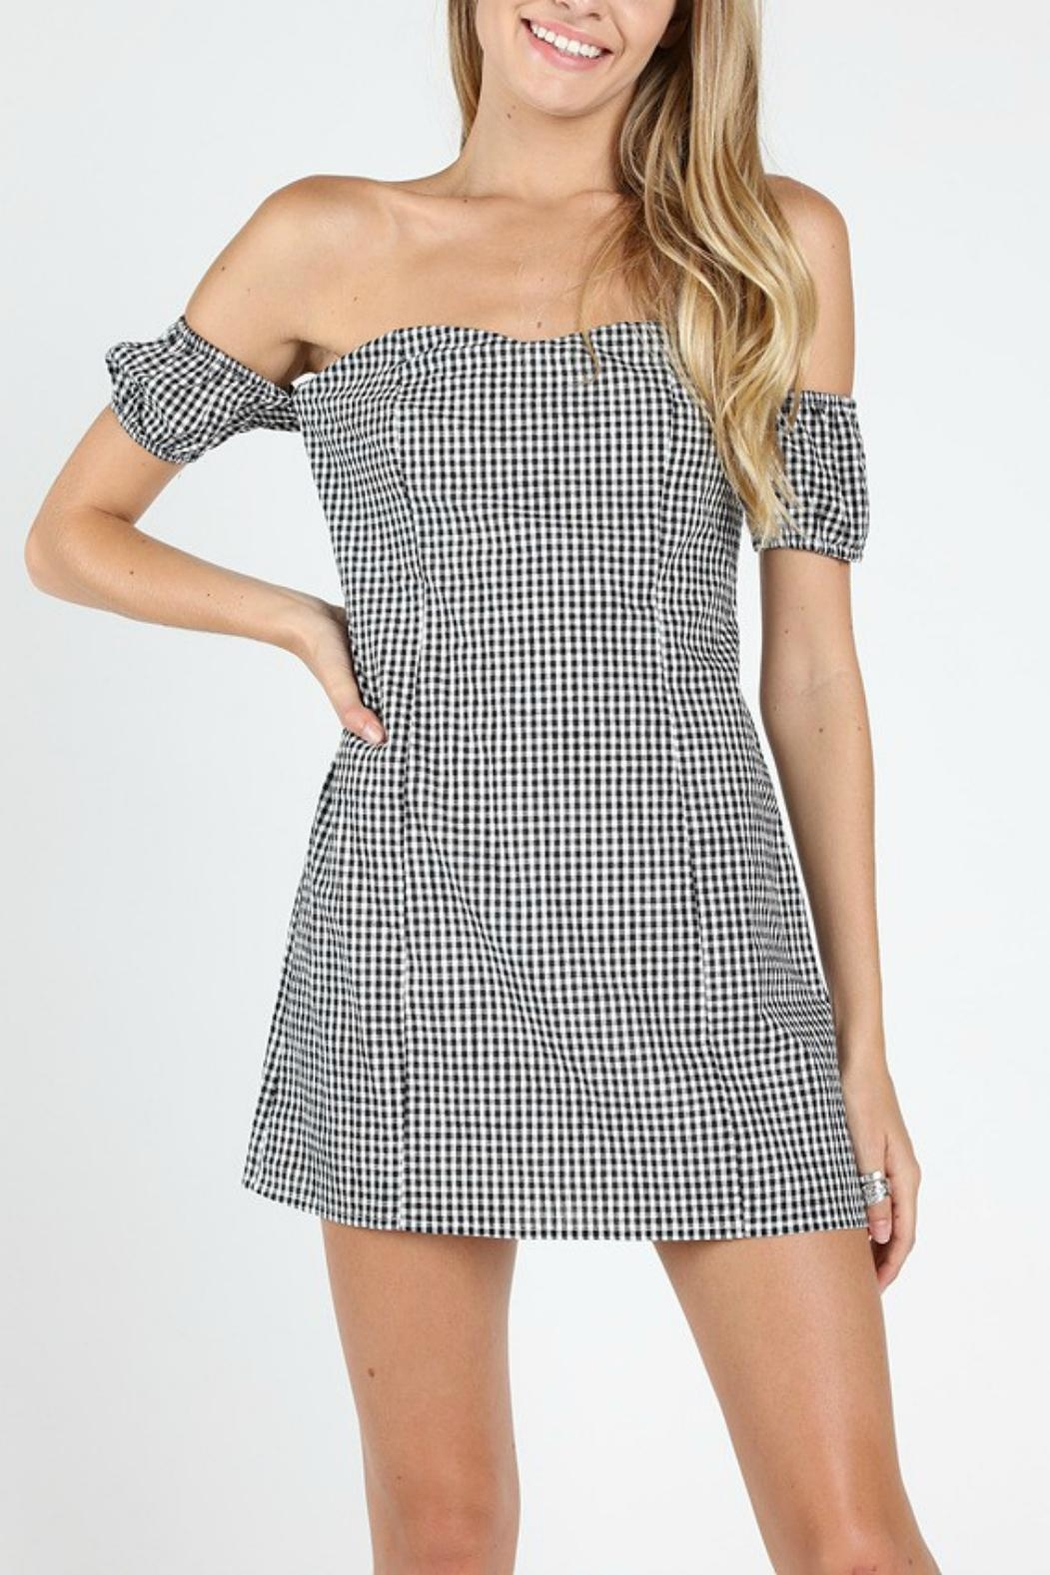 Pretty Little Things Sweetheart Gingham Dress - Main Image